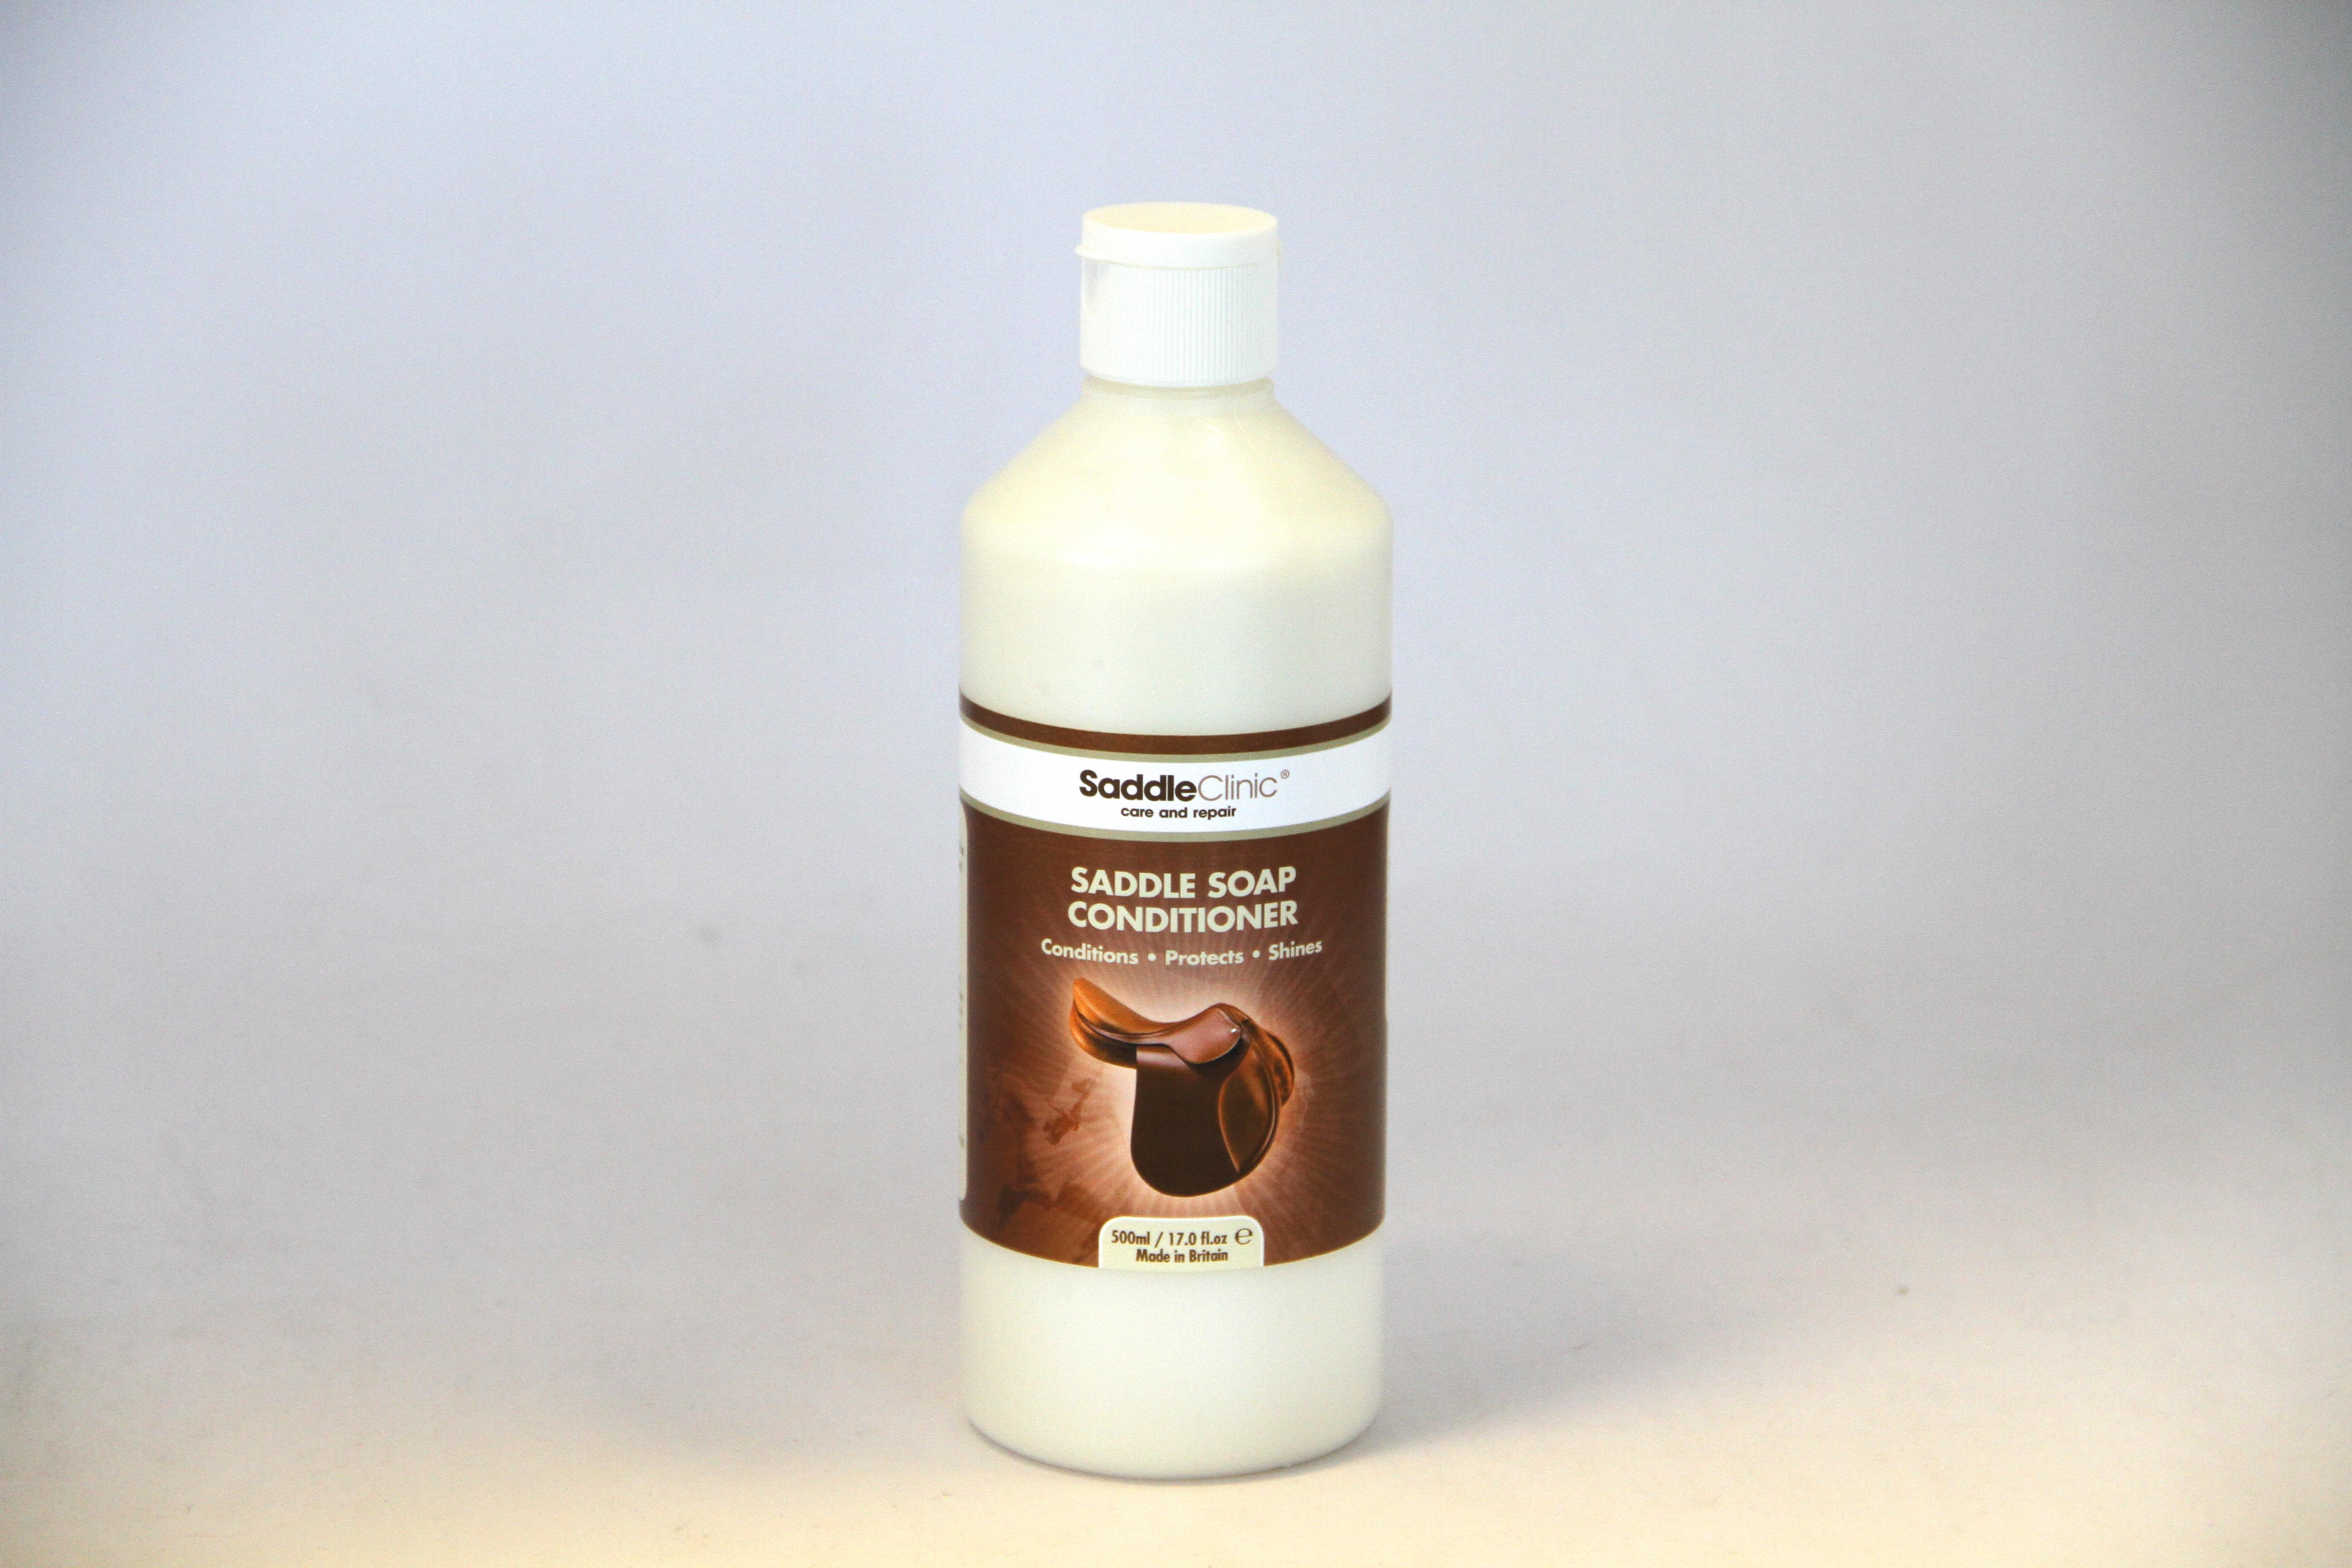 Saddle Clinic Saddle Soap Conditioner